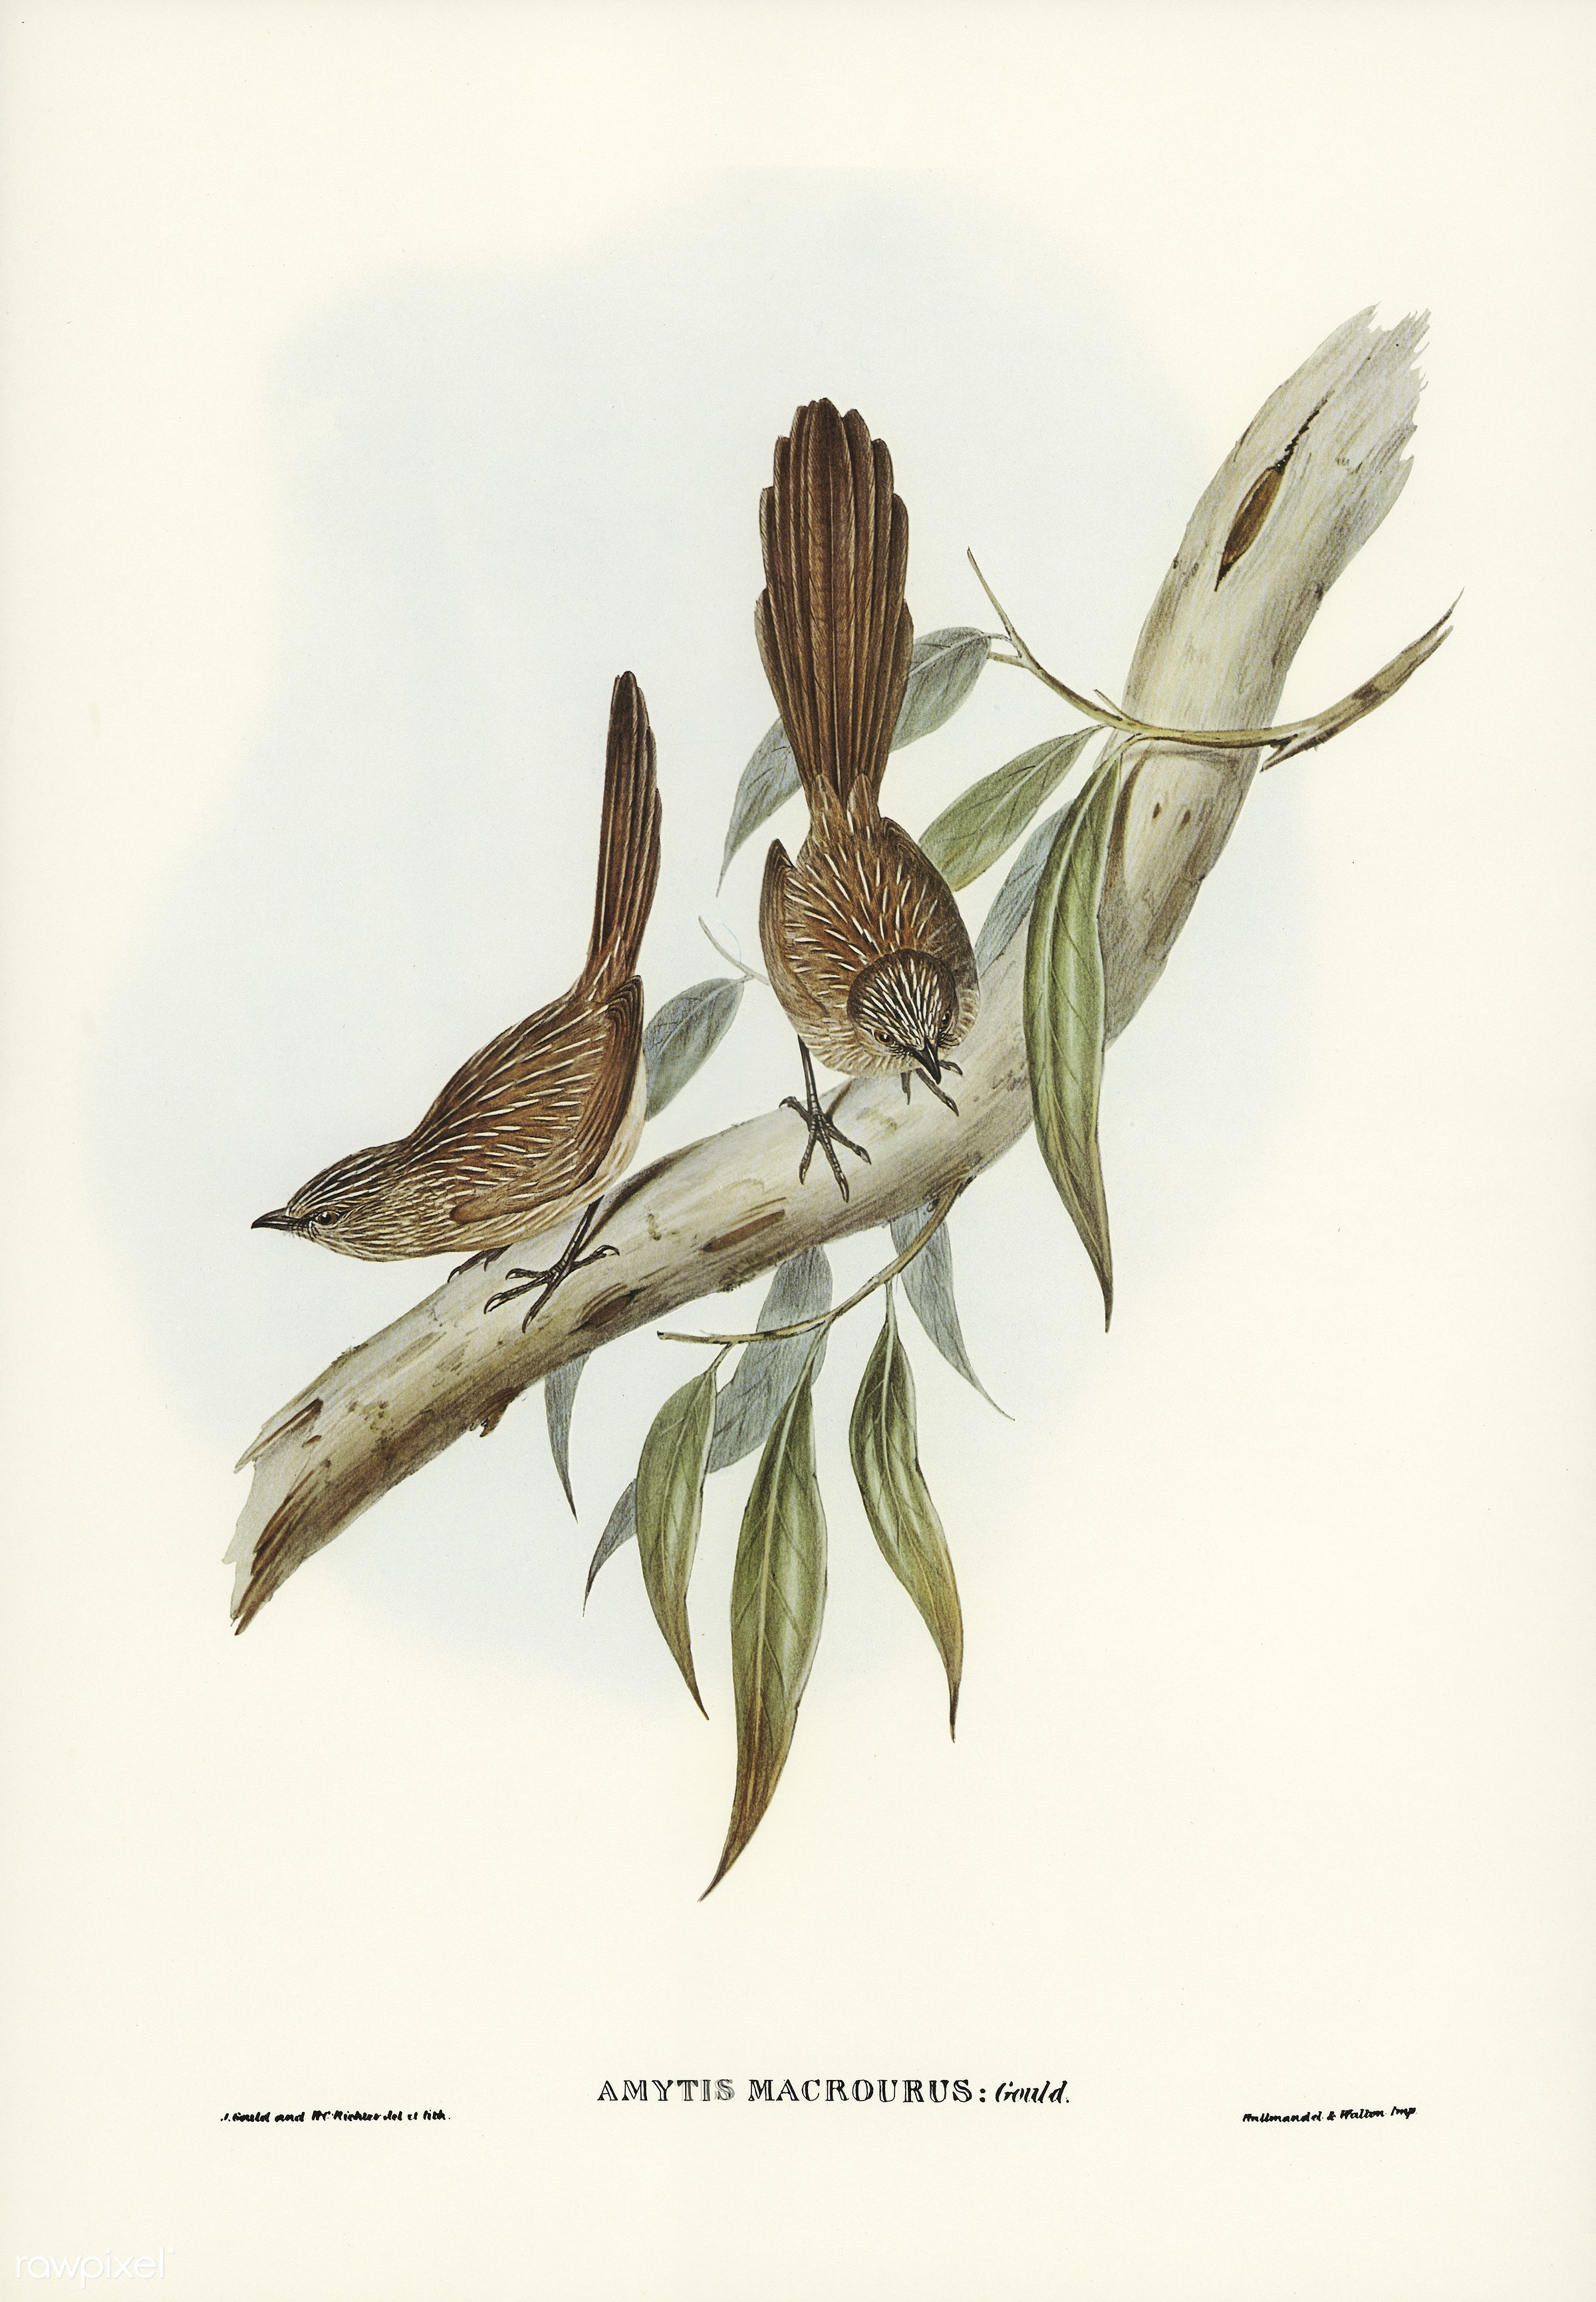 Large-tailed Wren (Amytis macrourus) illustrated by Elizabeth Gould (1804–1841) for John Gould's (1804-1881)...